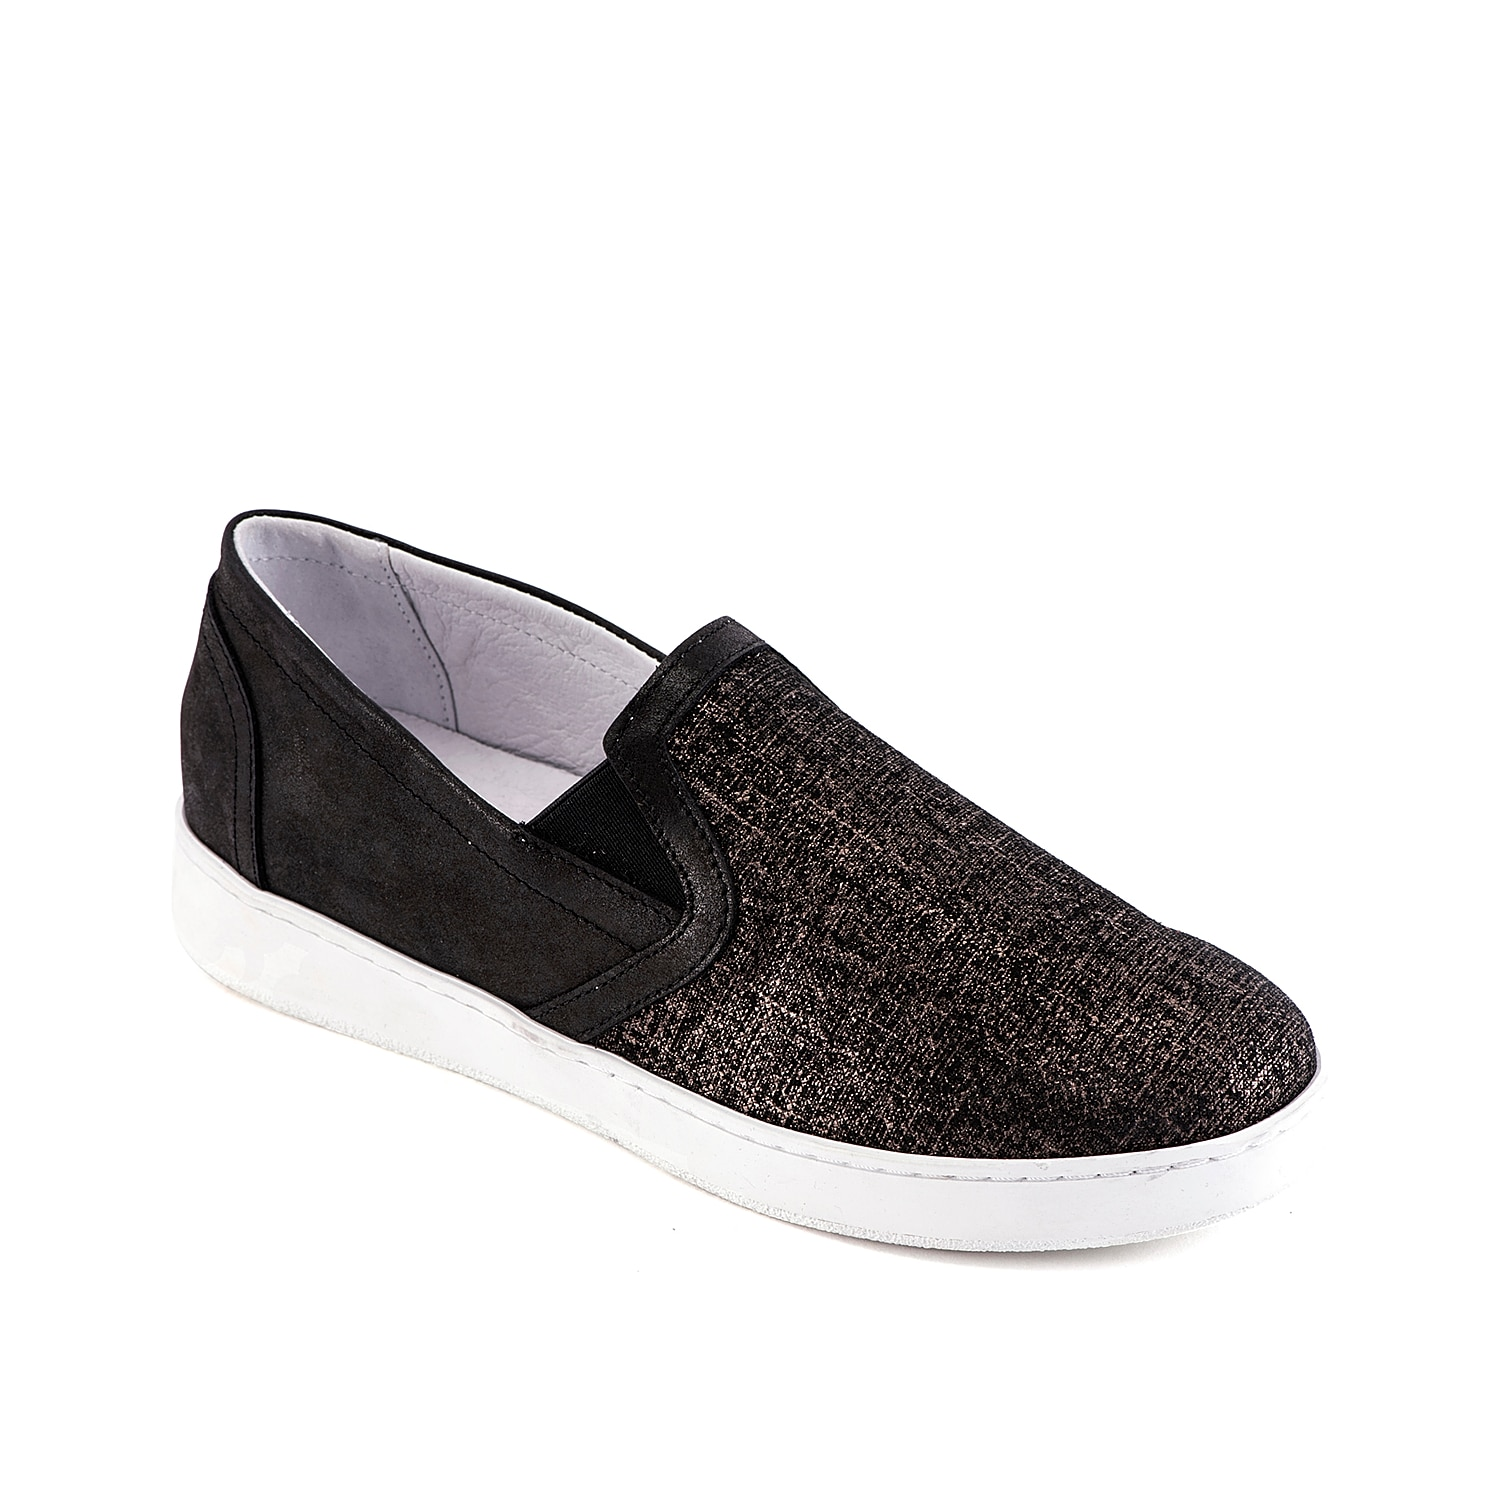 Add subtle sparkle to casual looks with the Vavy slip-on sneaker from David Tate. A leather lining and cushioned footbed will keep you comfortable all day long!